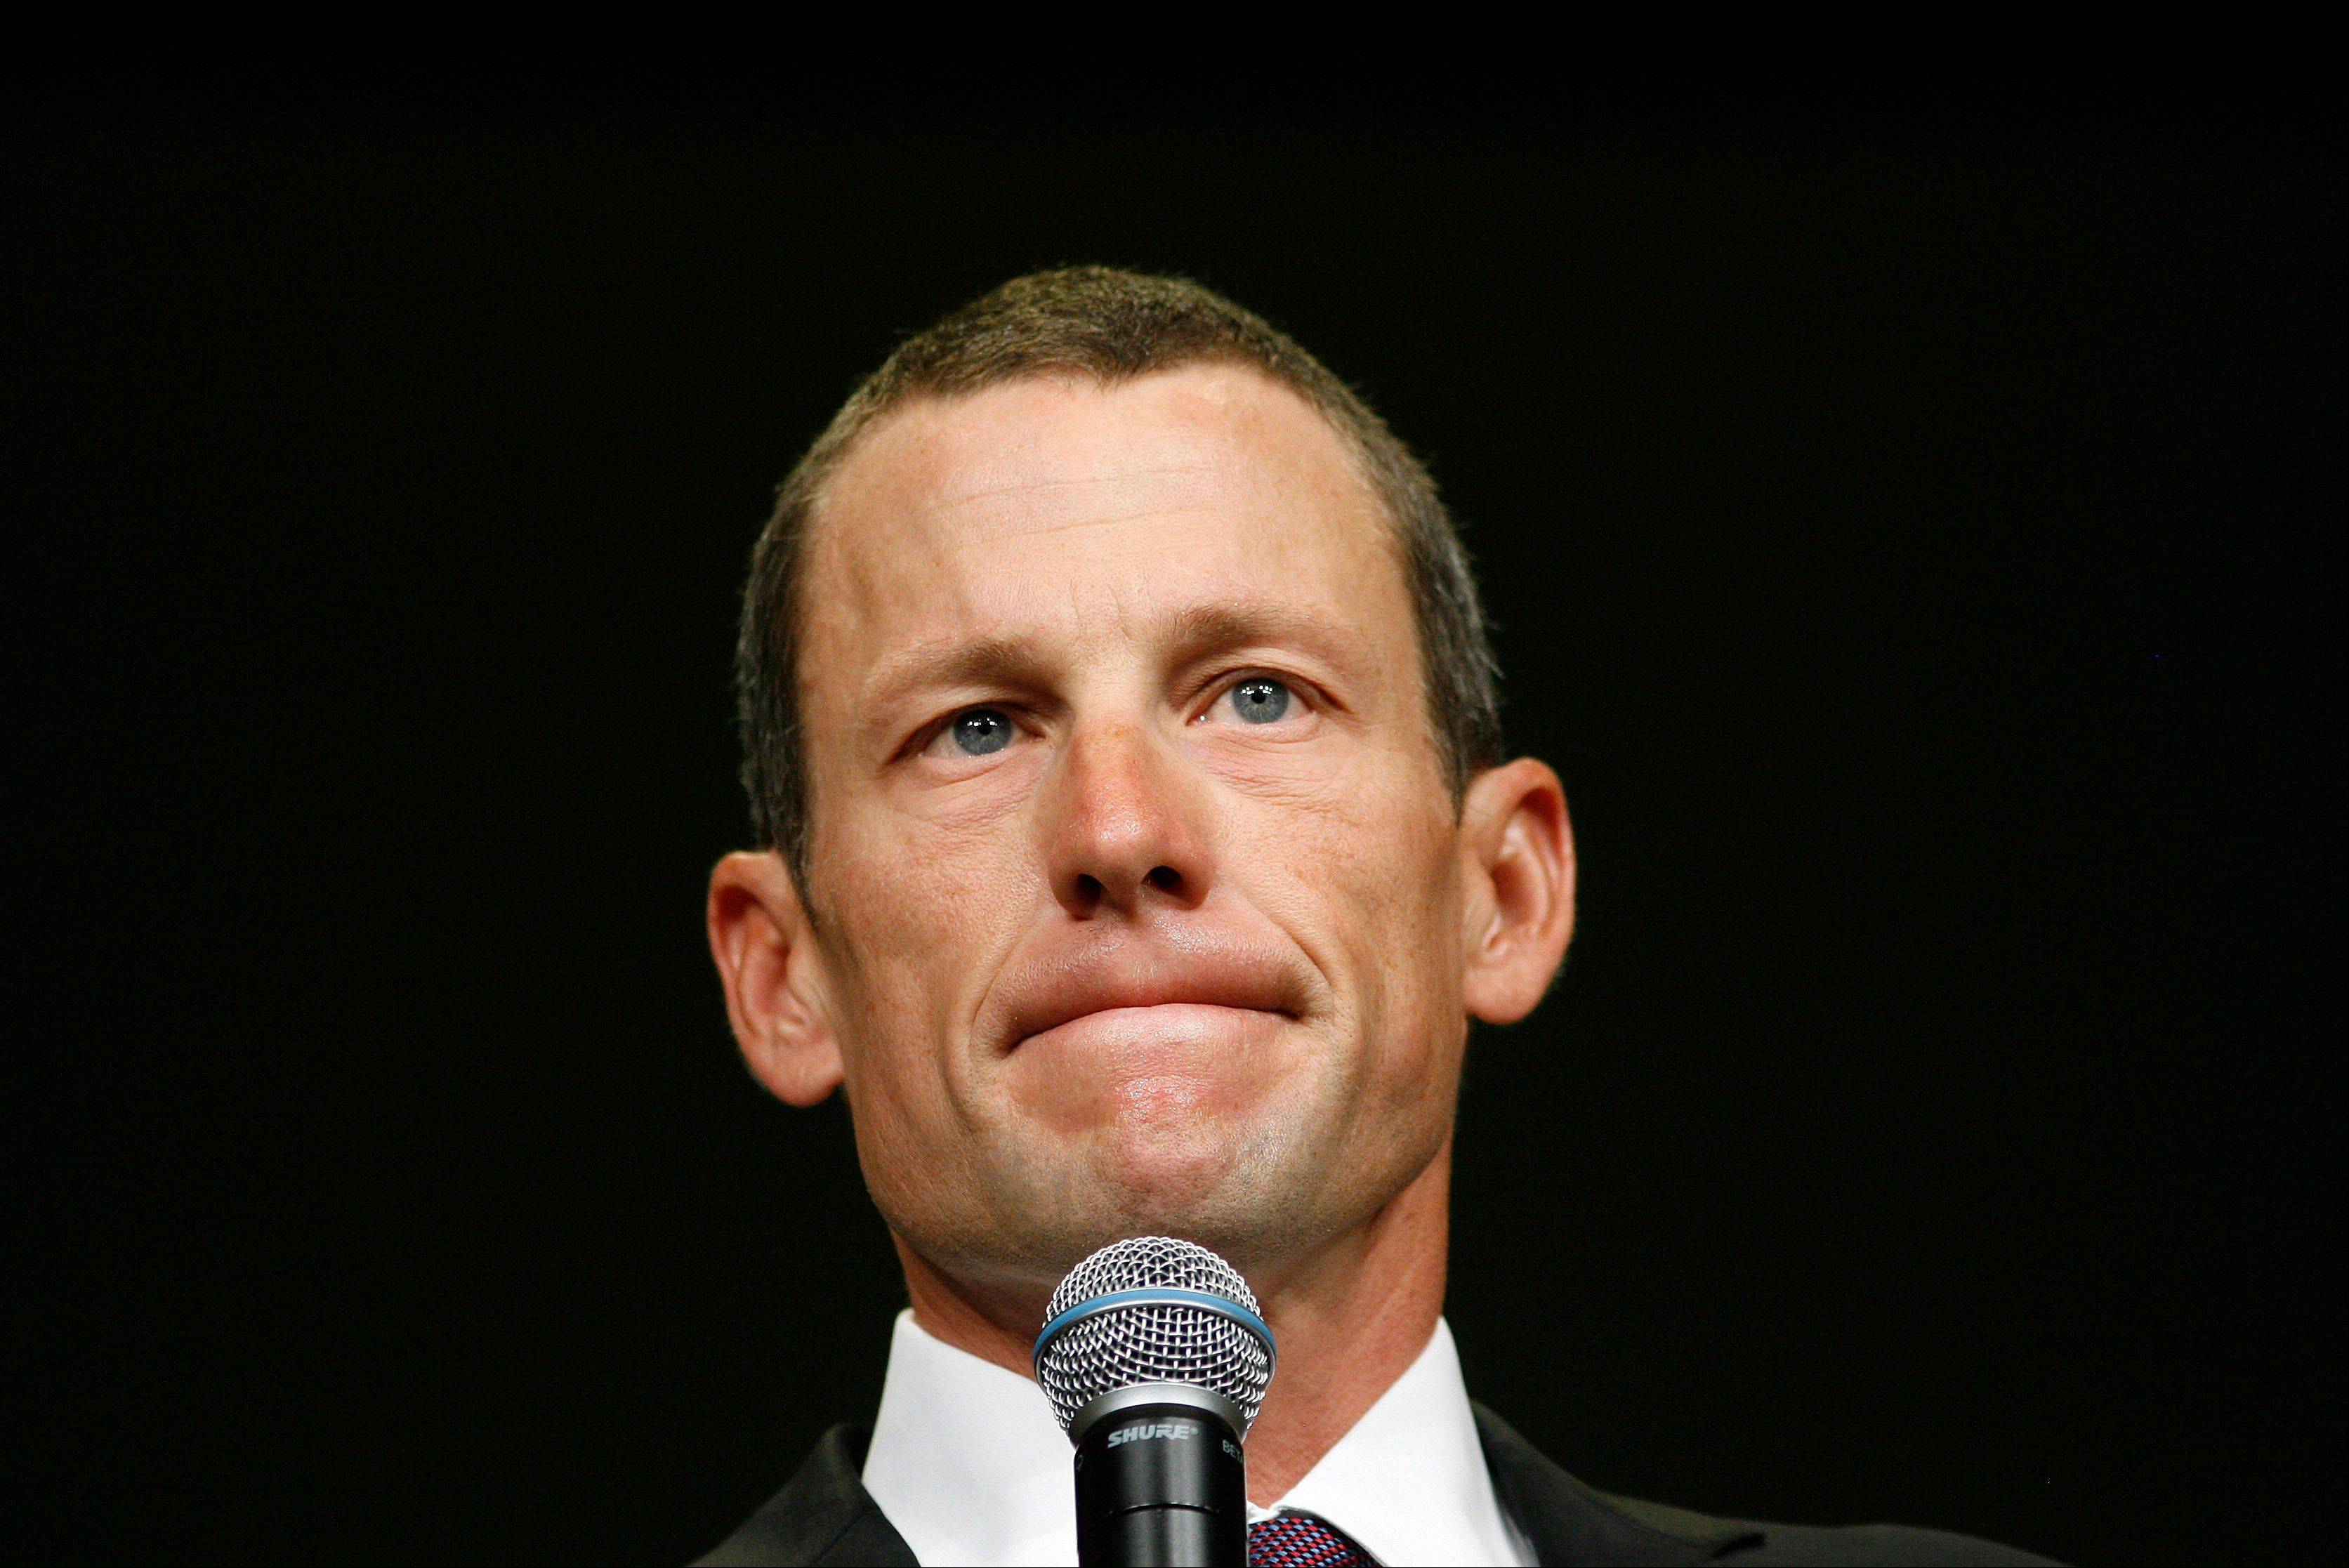 Lance Armstrong has stepped down as chairman of his Livestrong cancer-fighting charity so the group can focus on its mission instead of its founder's problems. The move came a week after the U.S. Anti-Doping Agency released a massive report detailing allegations of widespread doping by Armstrong and his teams when he won the Tour de France seven consecutive times from 1999 to 2005.